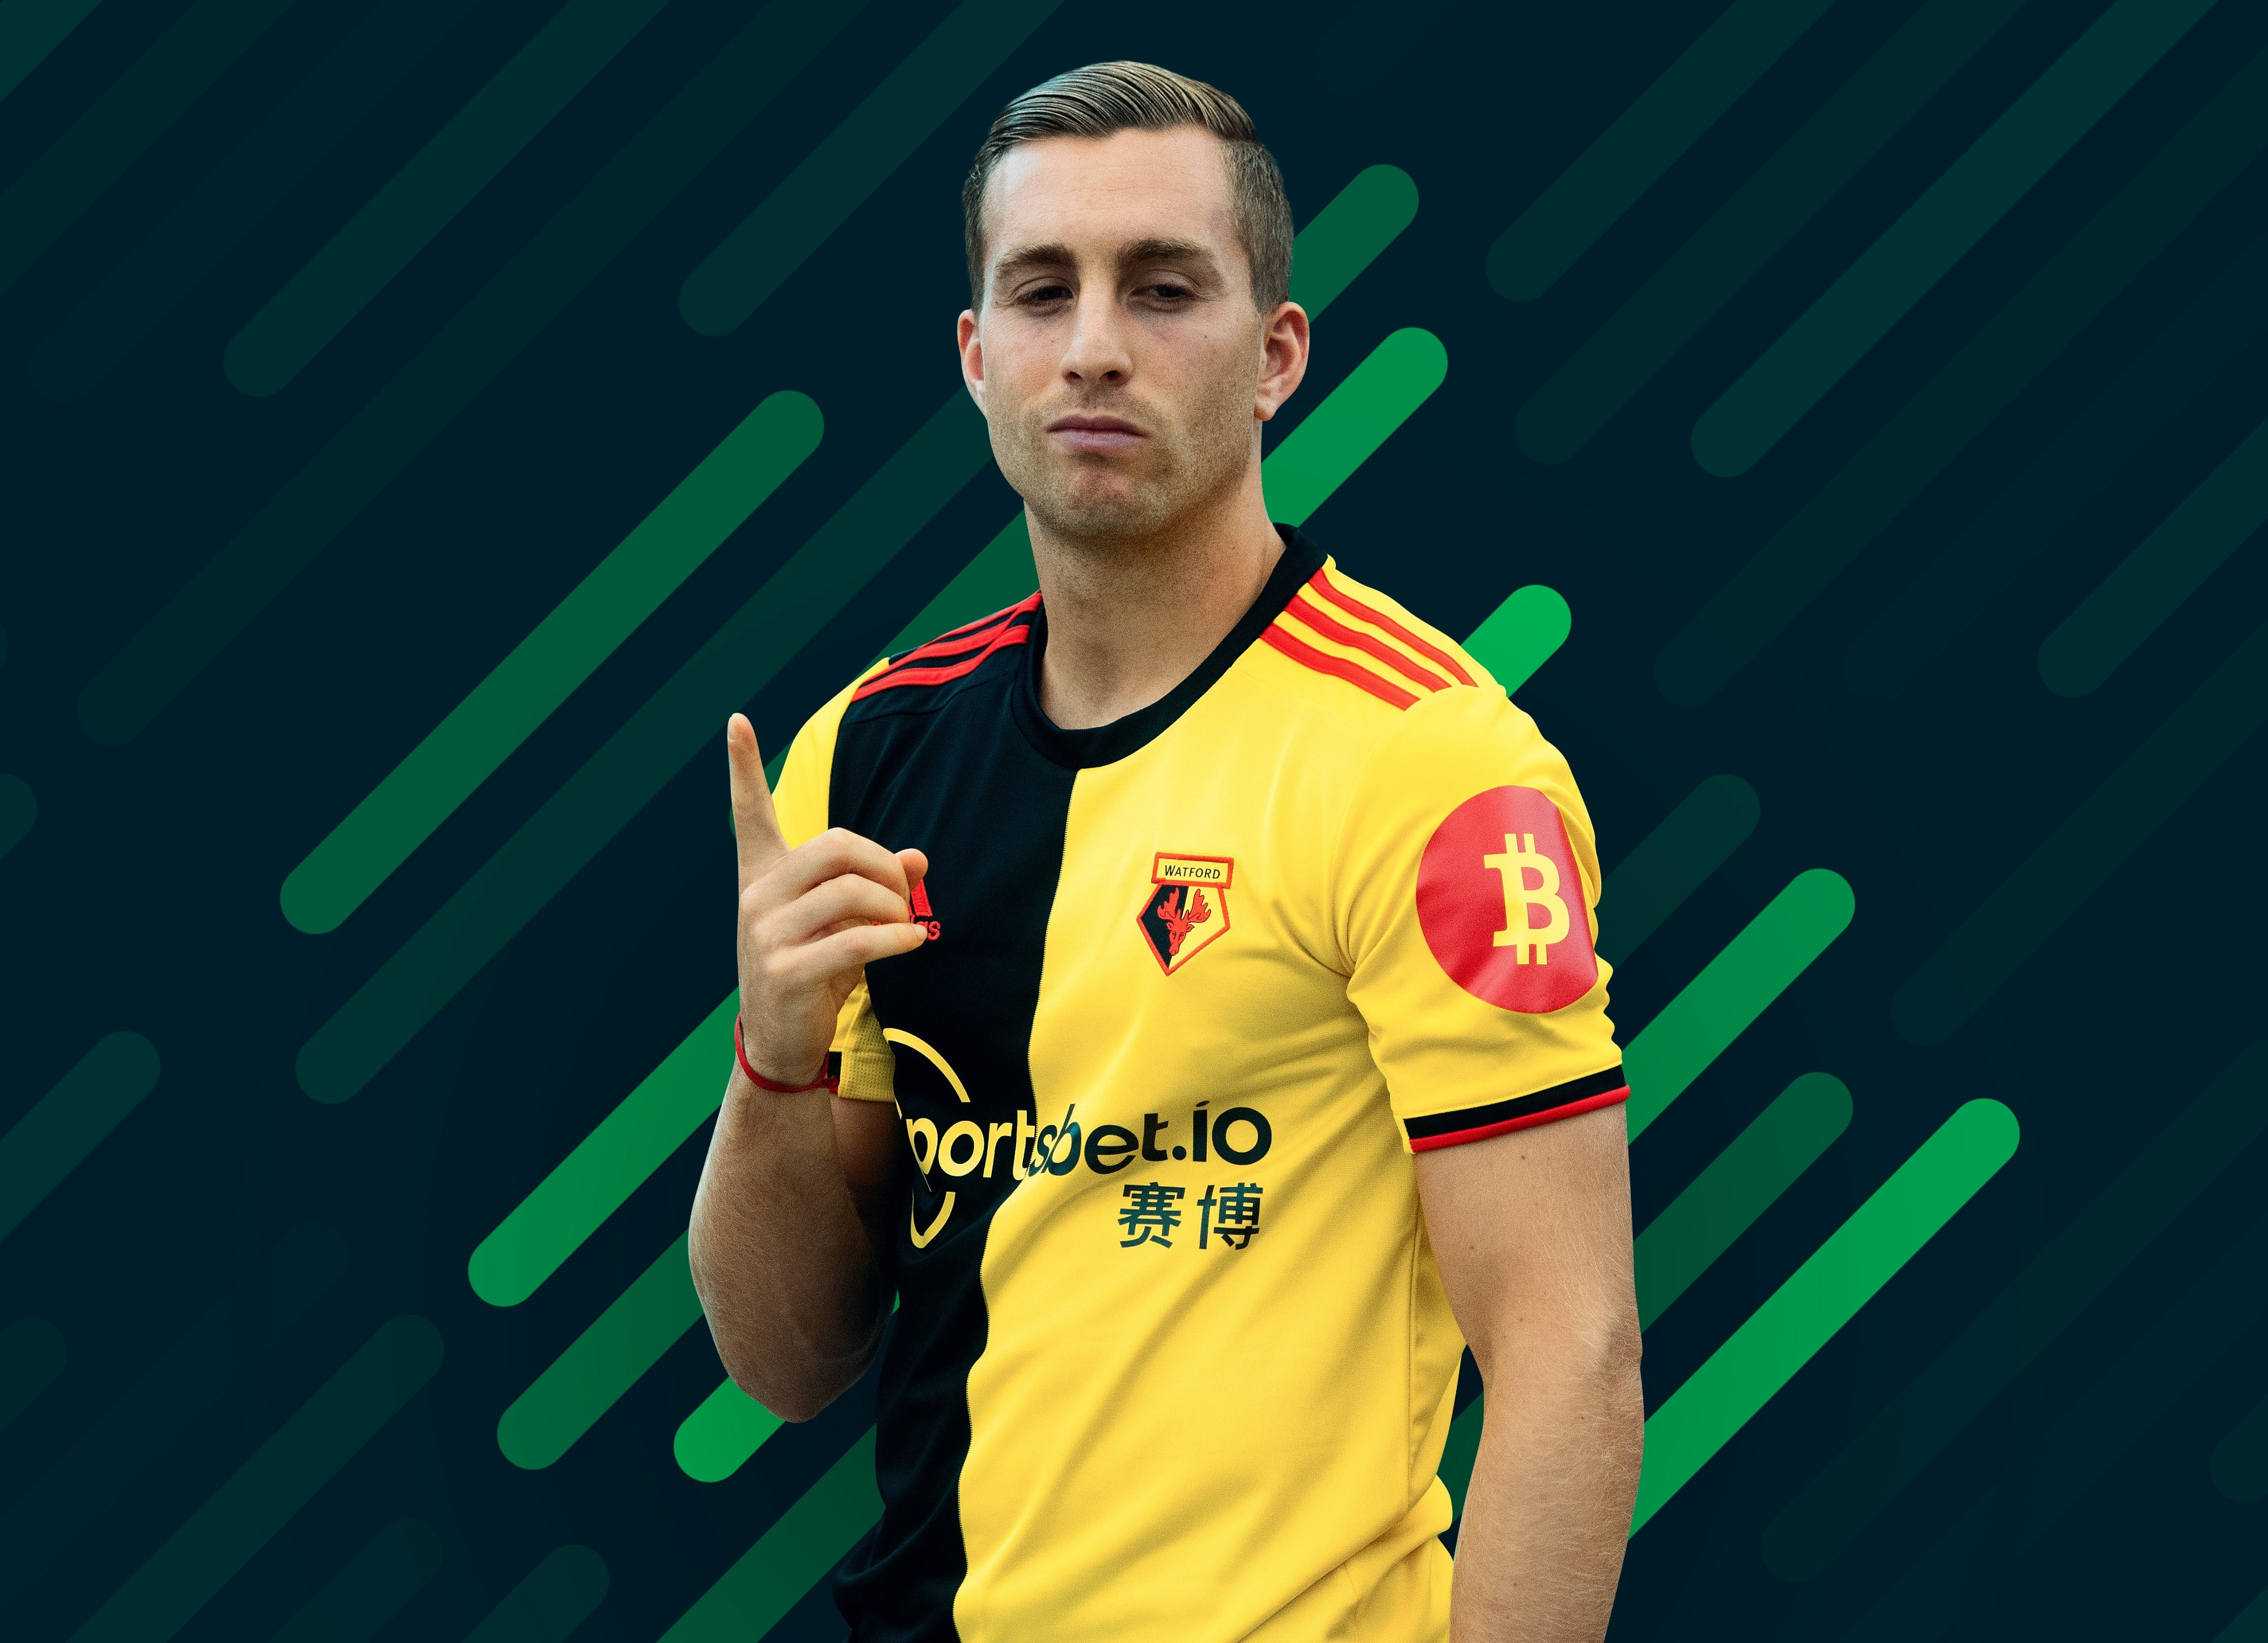 The Bitcoin logo on the Watford jerseys